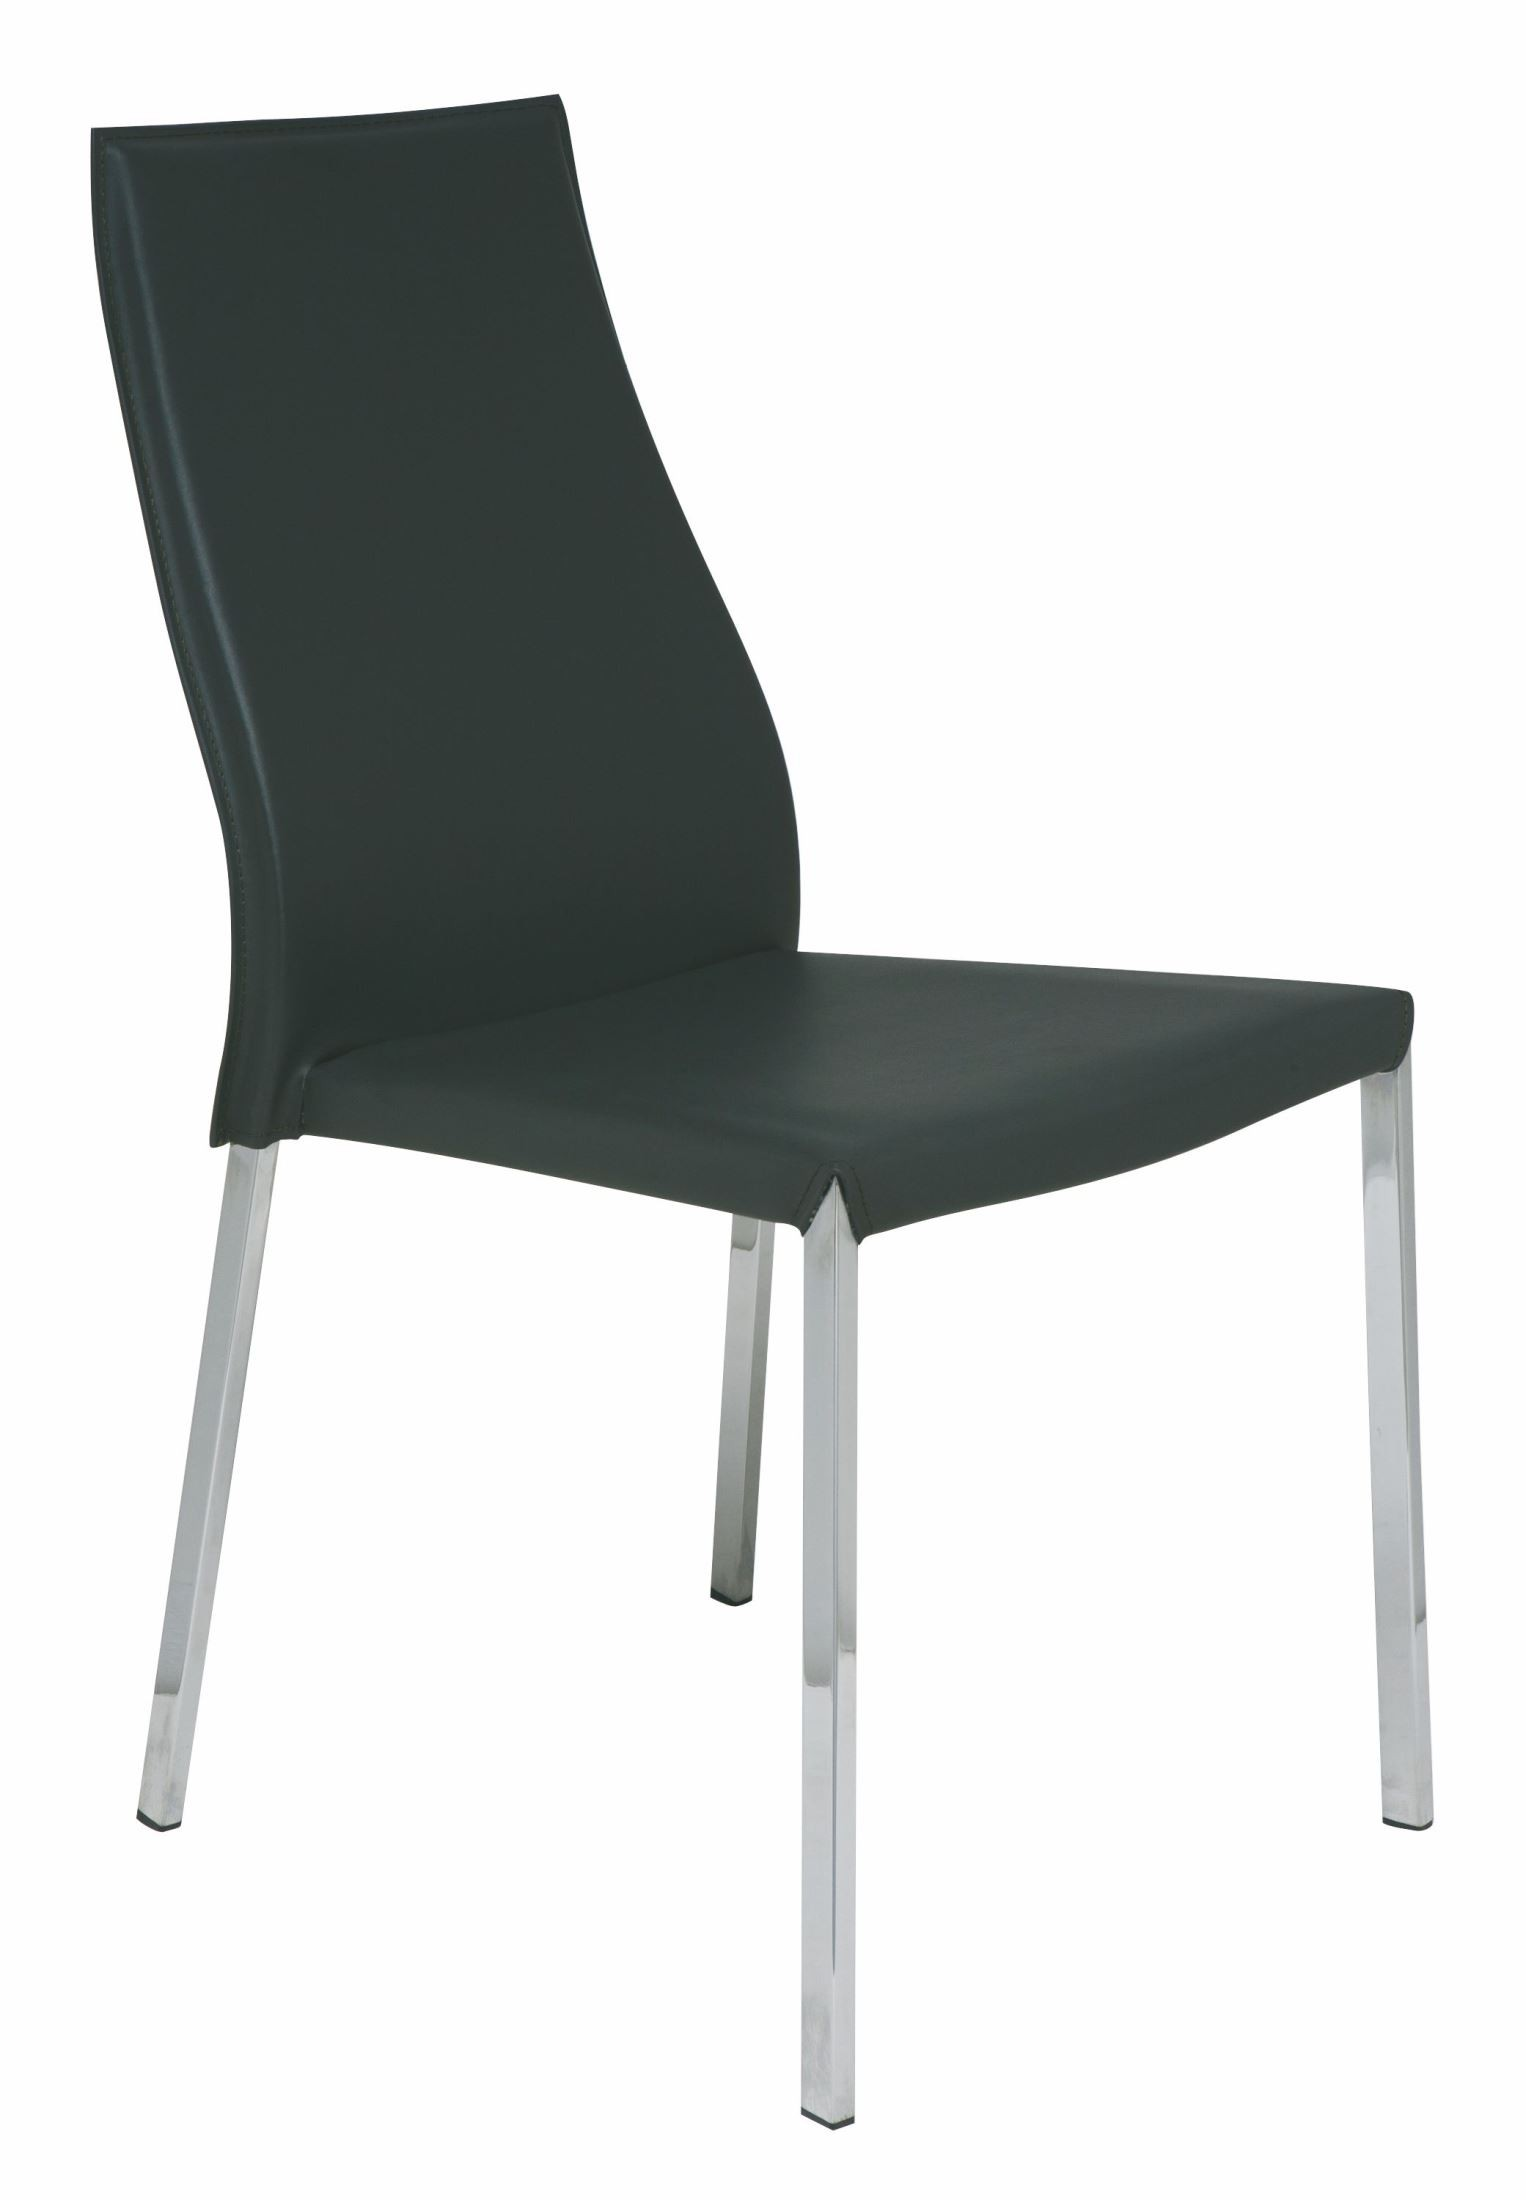 eric dark grey leather dining chair from nuevo coleman furniture. Black Bedroom Furniture Sets. Home Design Ideas